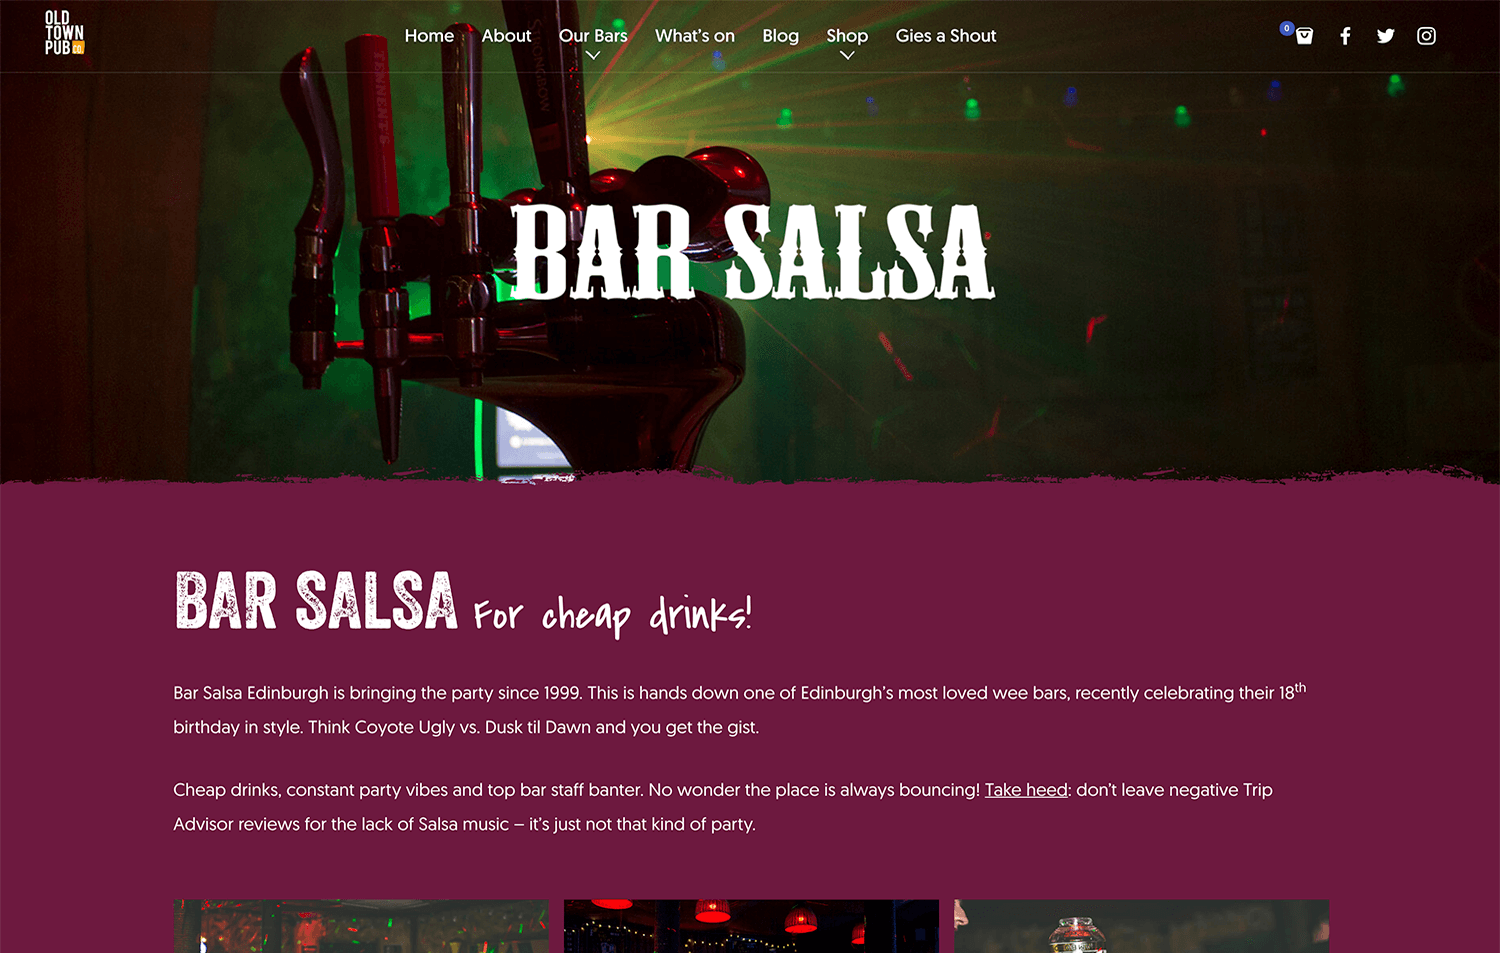 Landing Page still for Bar Salsa from Old Town Pub Co. ecommerce website design Edinburgh